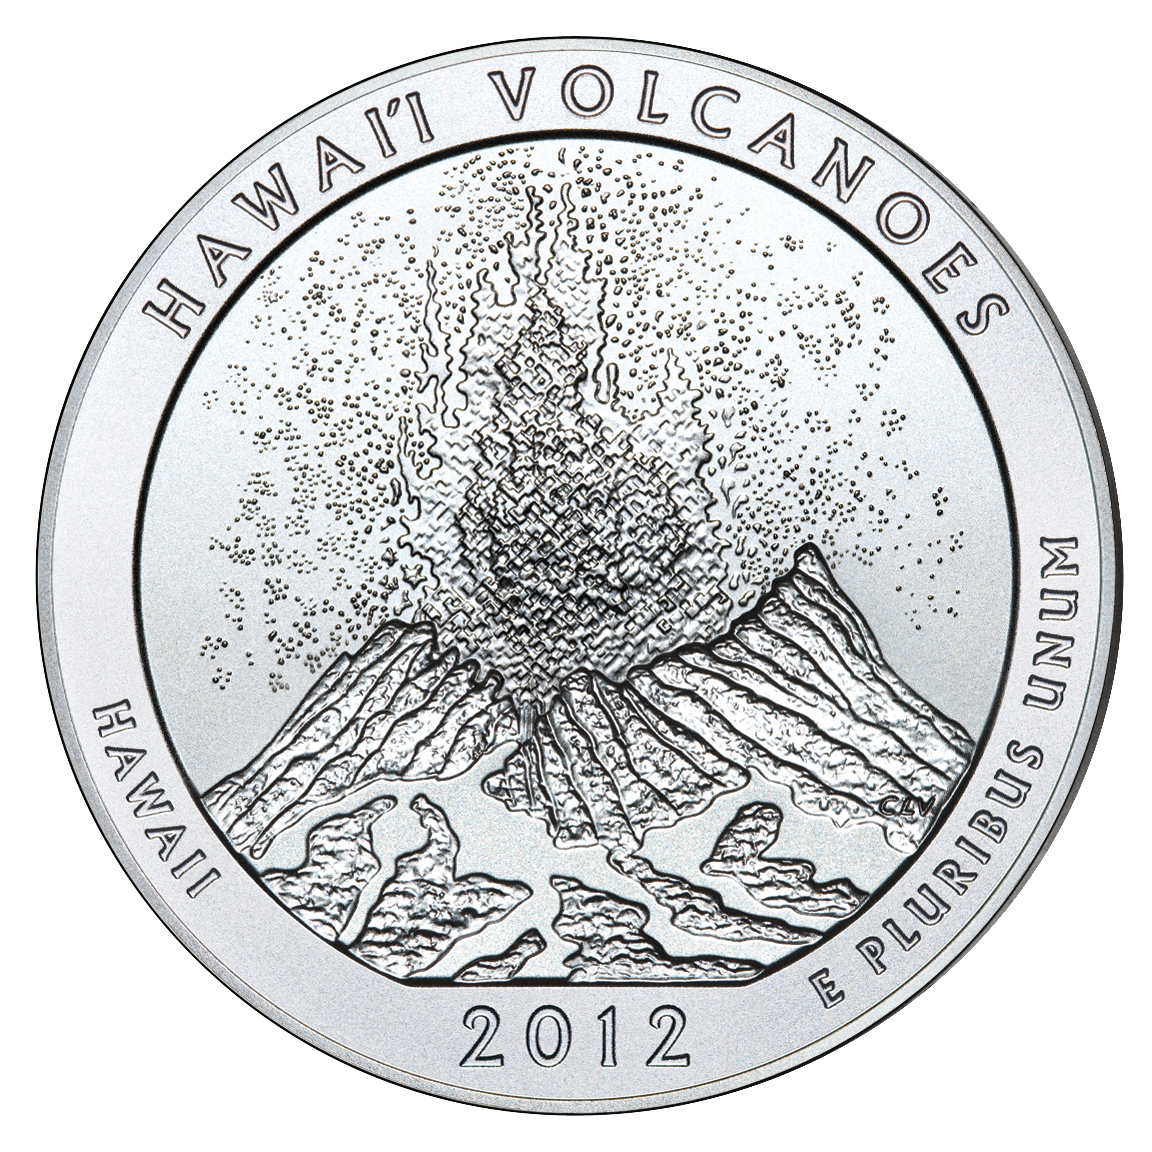 2012 America The Beautiful Quarters Five Ounce Silver Uncirculated Coin Hawaii Volcanoes Reverse